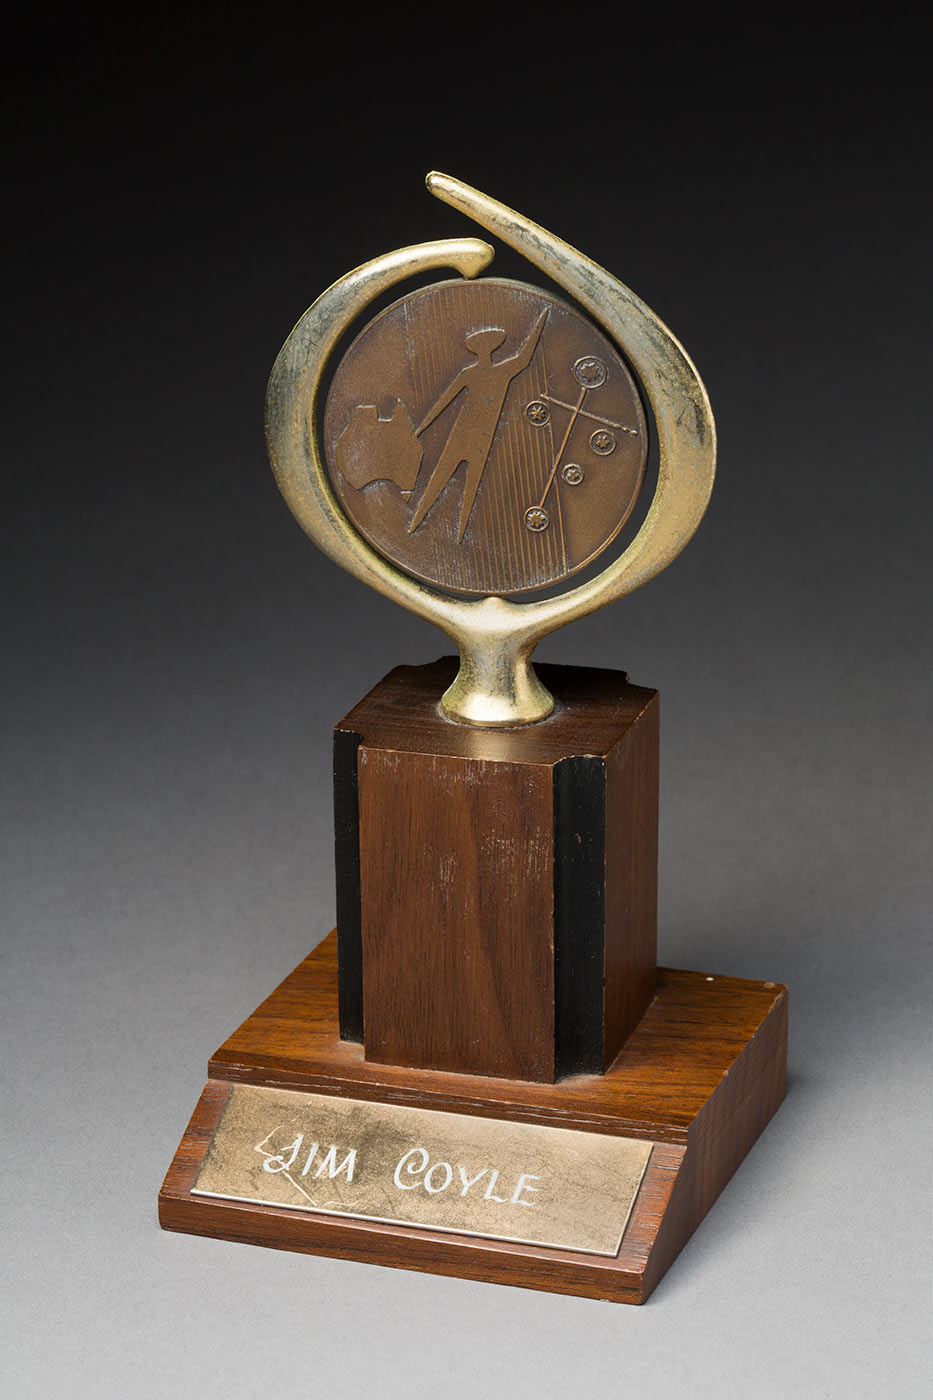 A bronze medallion featuring a stylised image of the shape of Australia, the Southern Cross and a human figure. The Image is encircled by a decorative gold-coloured metal that is support on a wooden pedestal base. Attached to the front of the base is a plaque with inscriptions that read 'JIM COYLE'. There is also inscriptions on the reverse side which read 'AWARDED BY THE AUSTRALIA DAY COUNCIL / FOR/OUTSTANDING / PROWESS / IN THE FIELD / OF SPORT / COMPETED / FOR ON / AUSTRALIA / DAY'. - click to view larger image